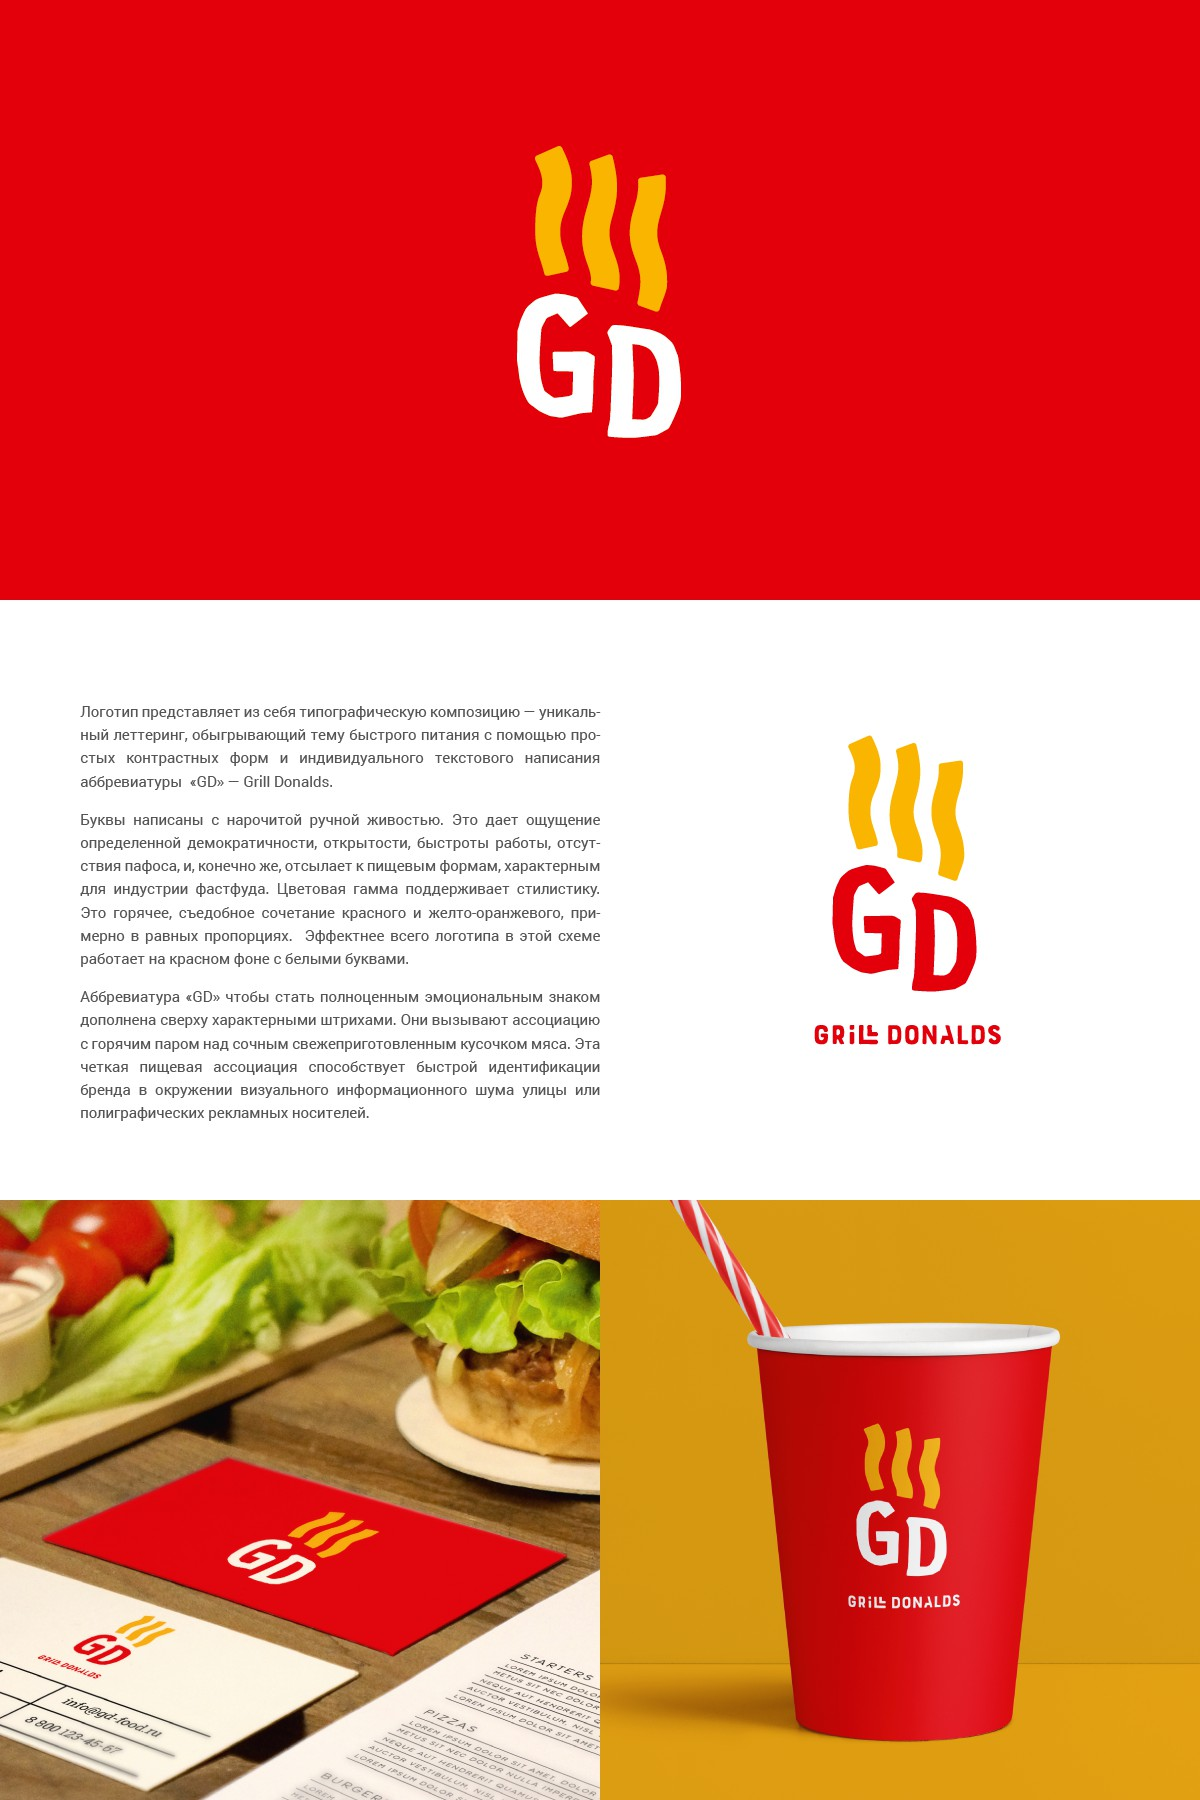 Grill Donalds